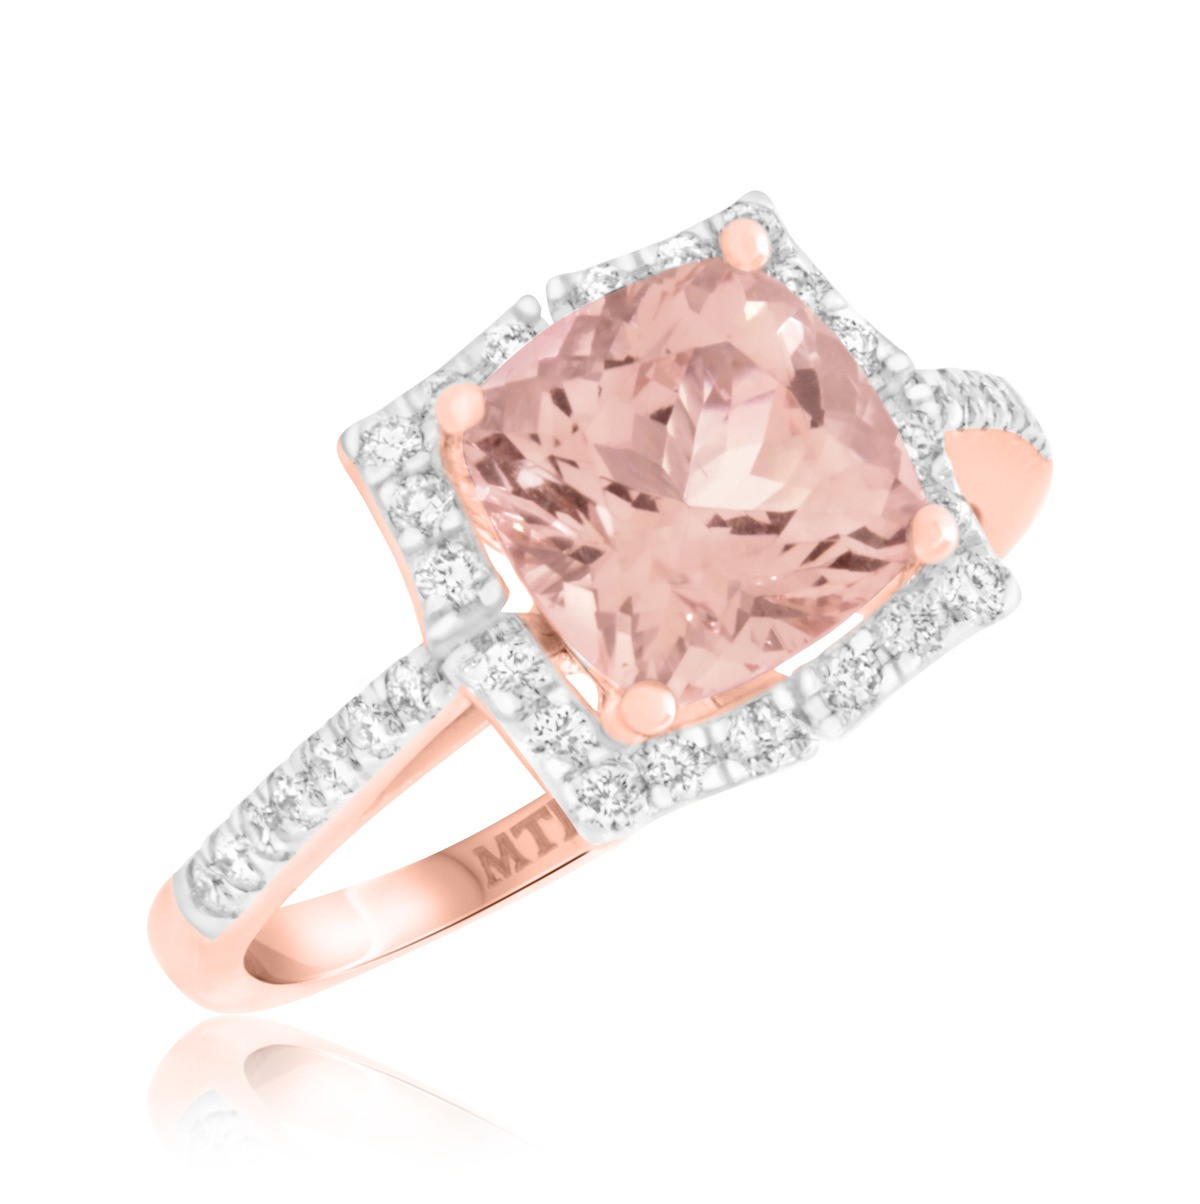 2 1/6 CT. T.W. Morganite and Diamond Engagement Ring 14K Rose Gold